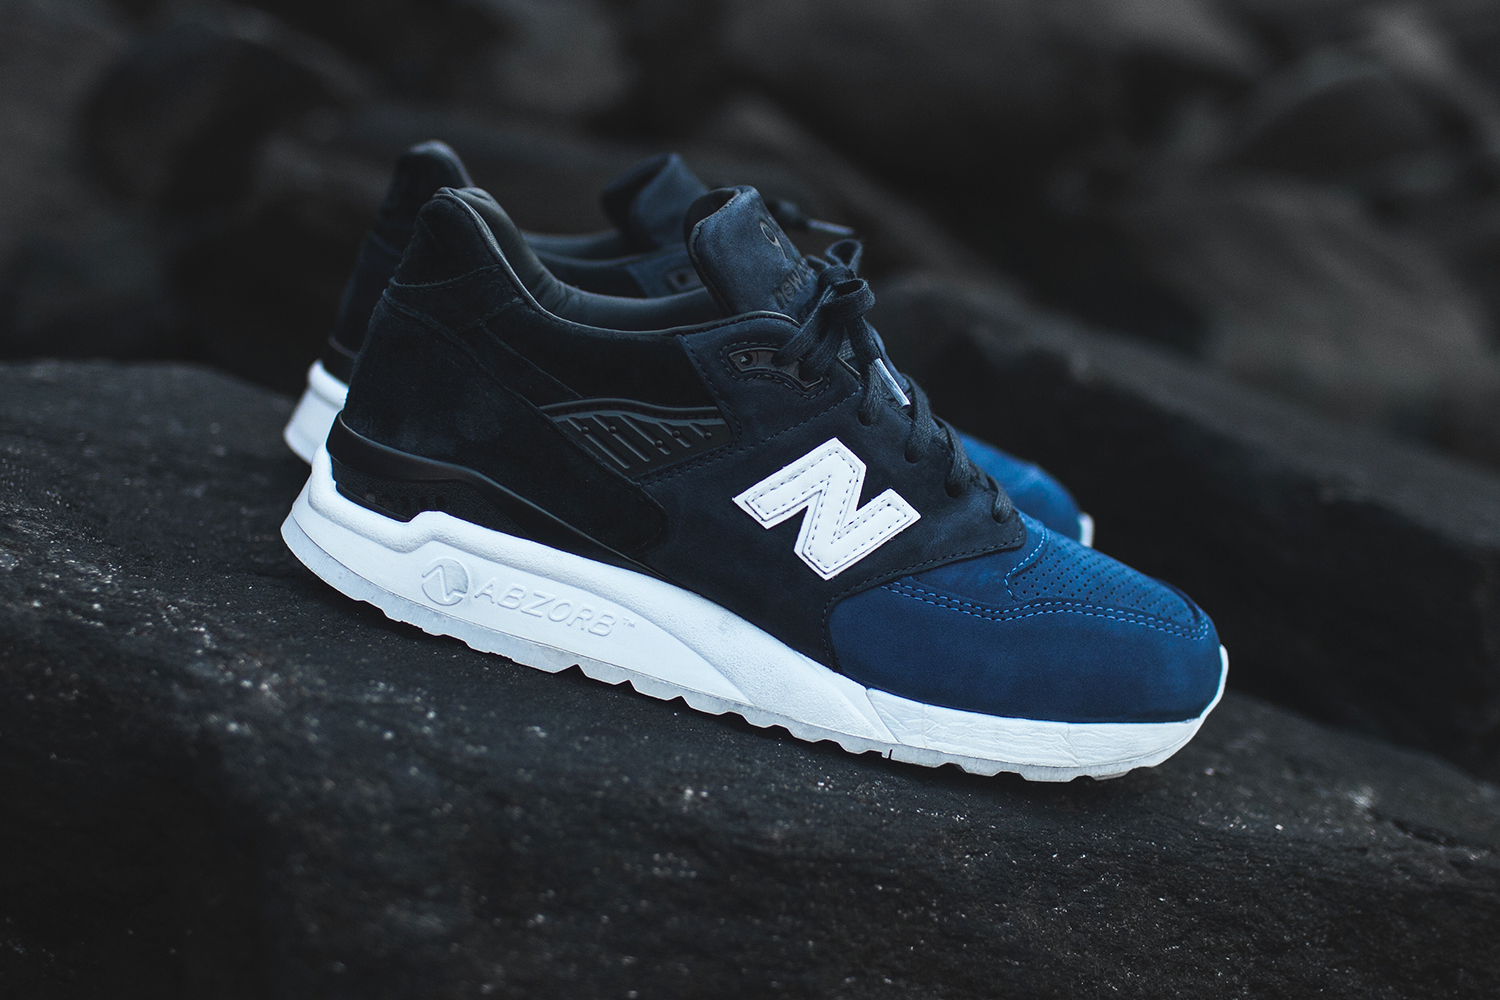 new balance 580 sizing